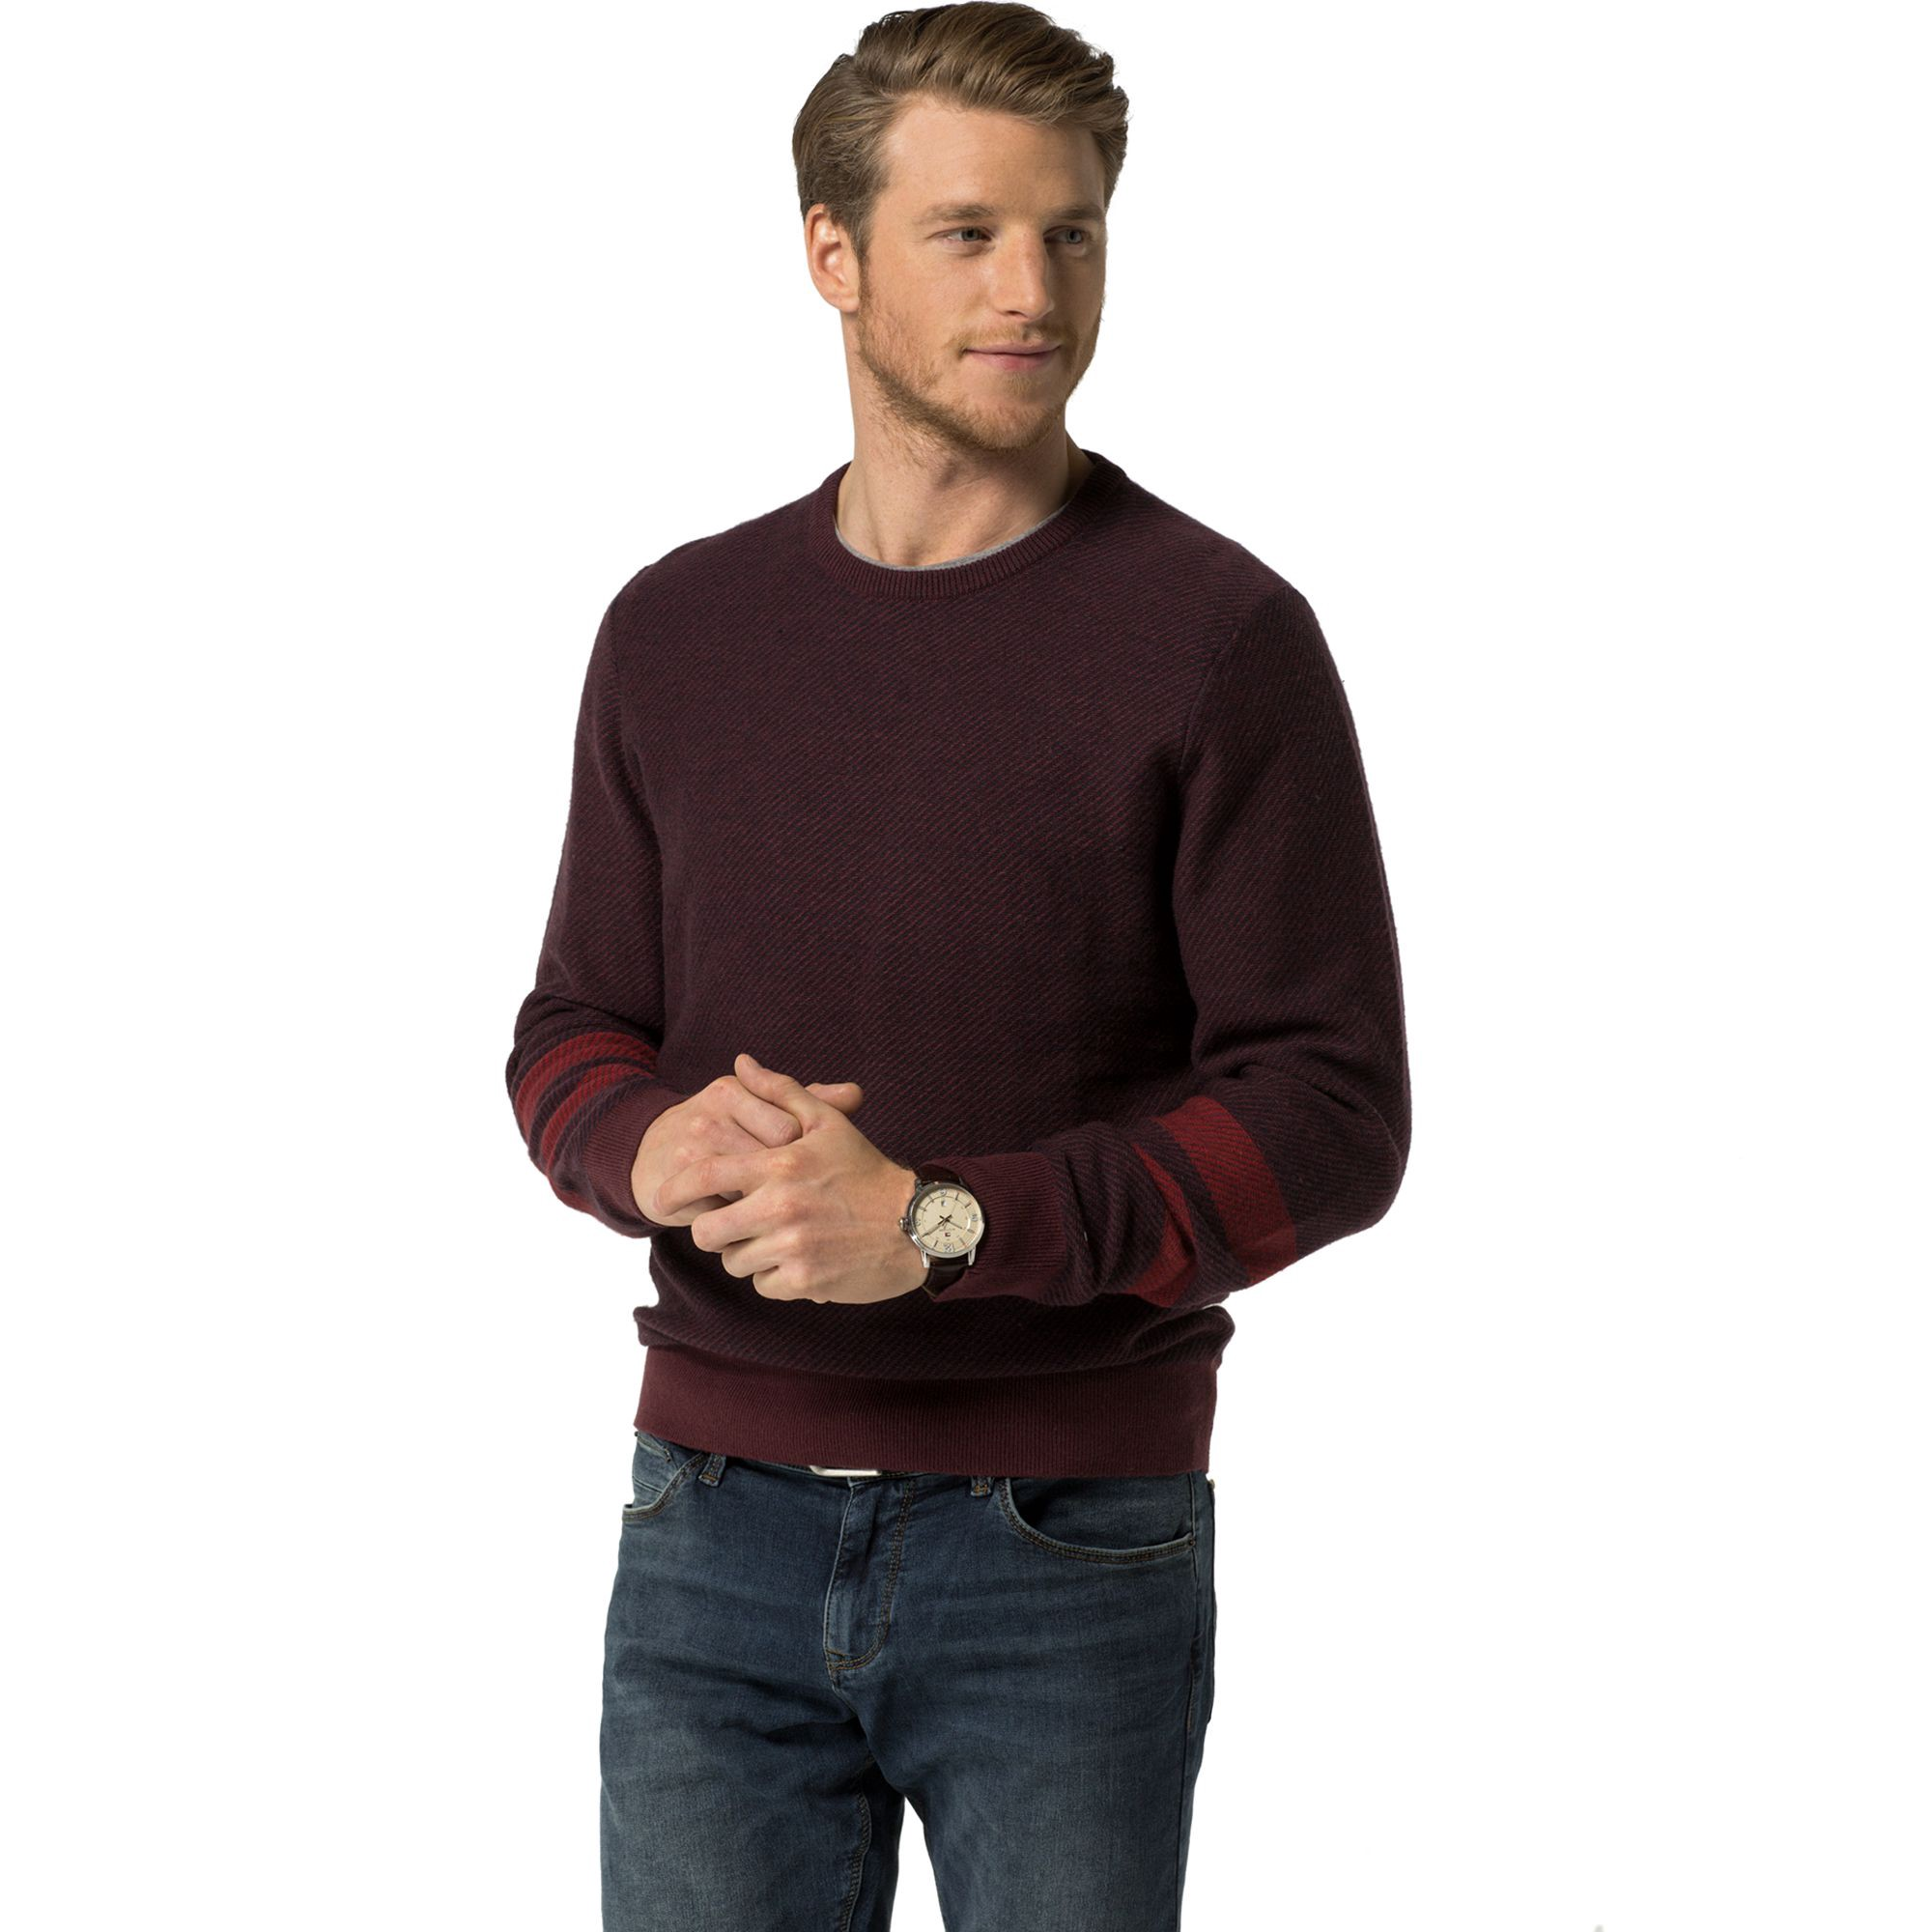 TOMMY HILFIGER Armband Crewneck Sweater - Tawny Port/ Multi